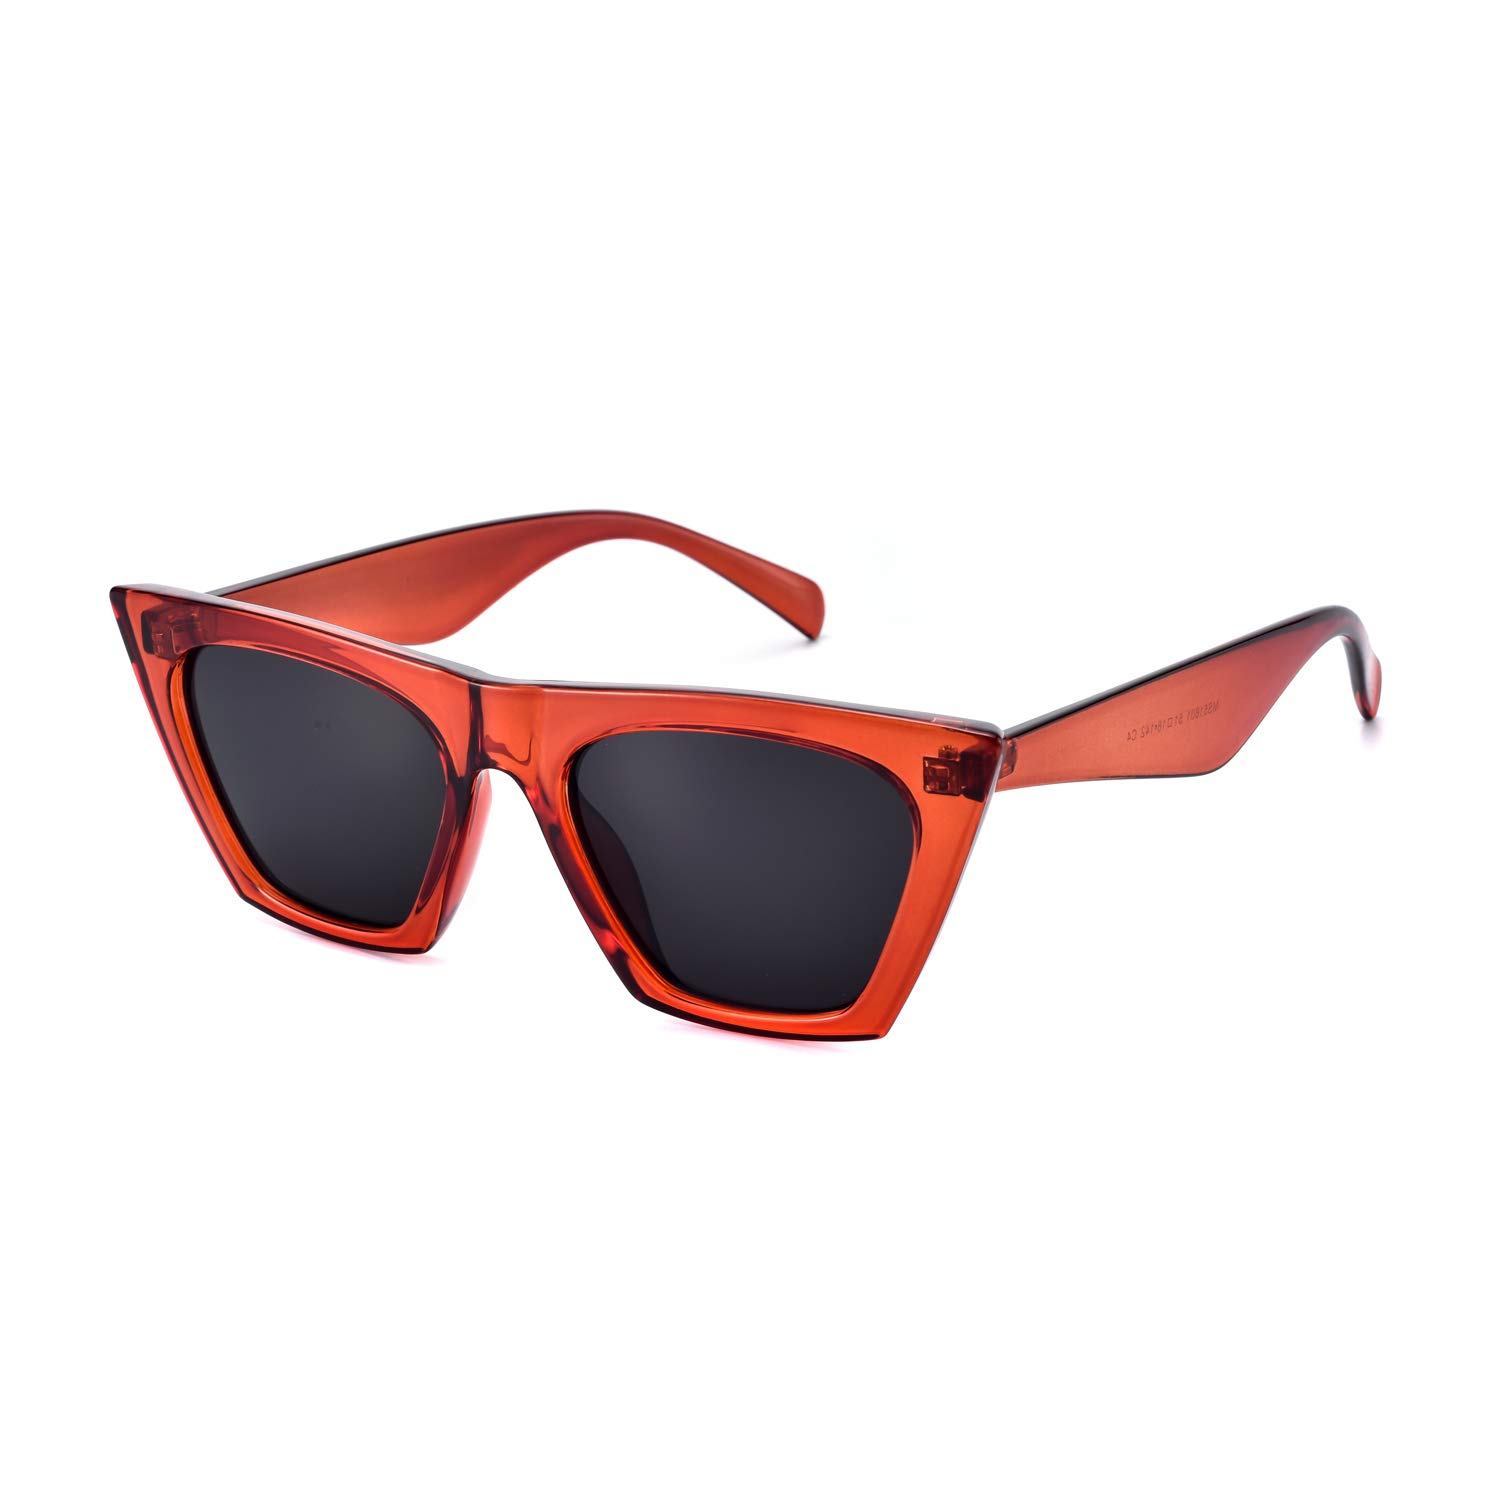 886b7480116 Amazon.com  Mosanana Retro Vintage Square Cateye Sunglasses for Women Small  Chic Red Mod Clout Goggles Sharp Pointed Pointy Designer Inspired Tip Cat  Eye ...